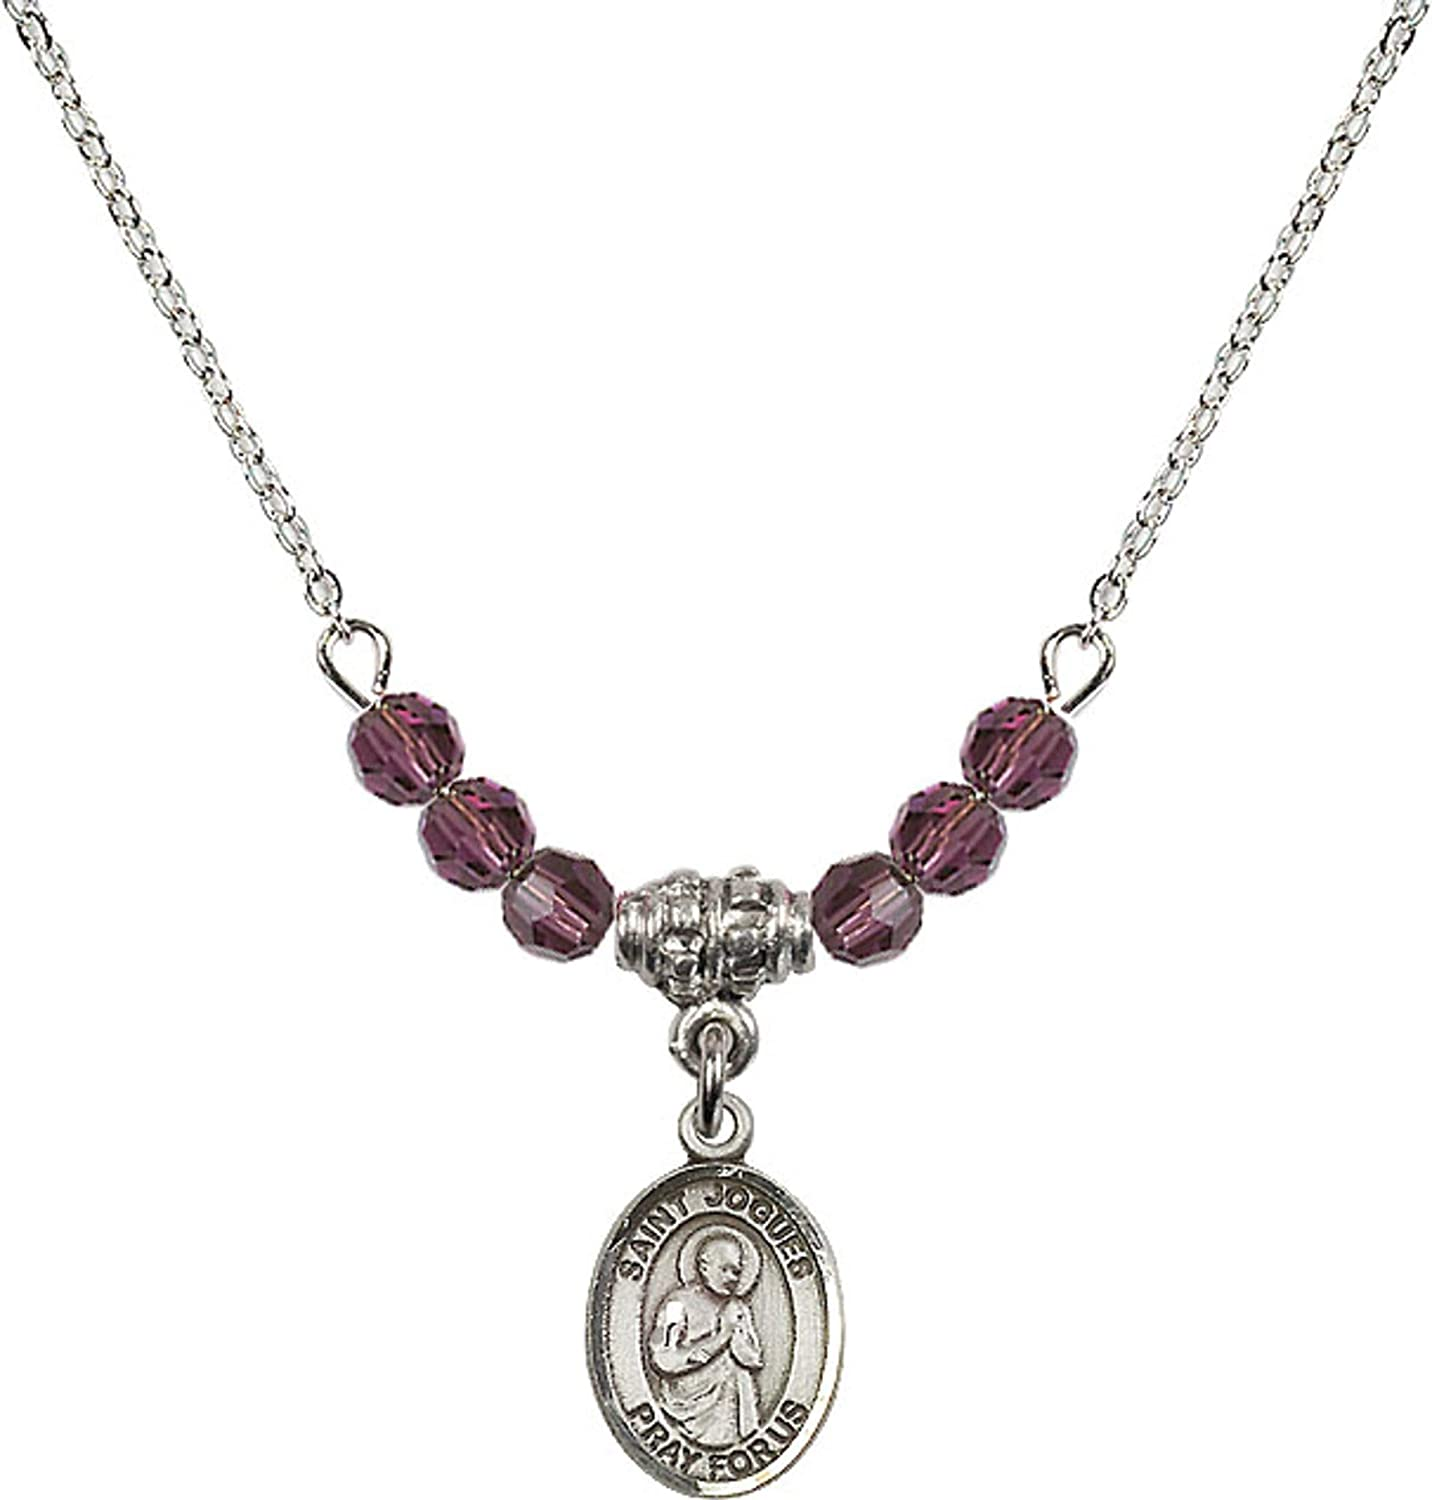 Bonyak Jewelry 18 Inch Rhodium Plated Necklace w// 4mm Purple February Birth Month Stone Beads and Saint Isaac Jogues Charm